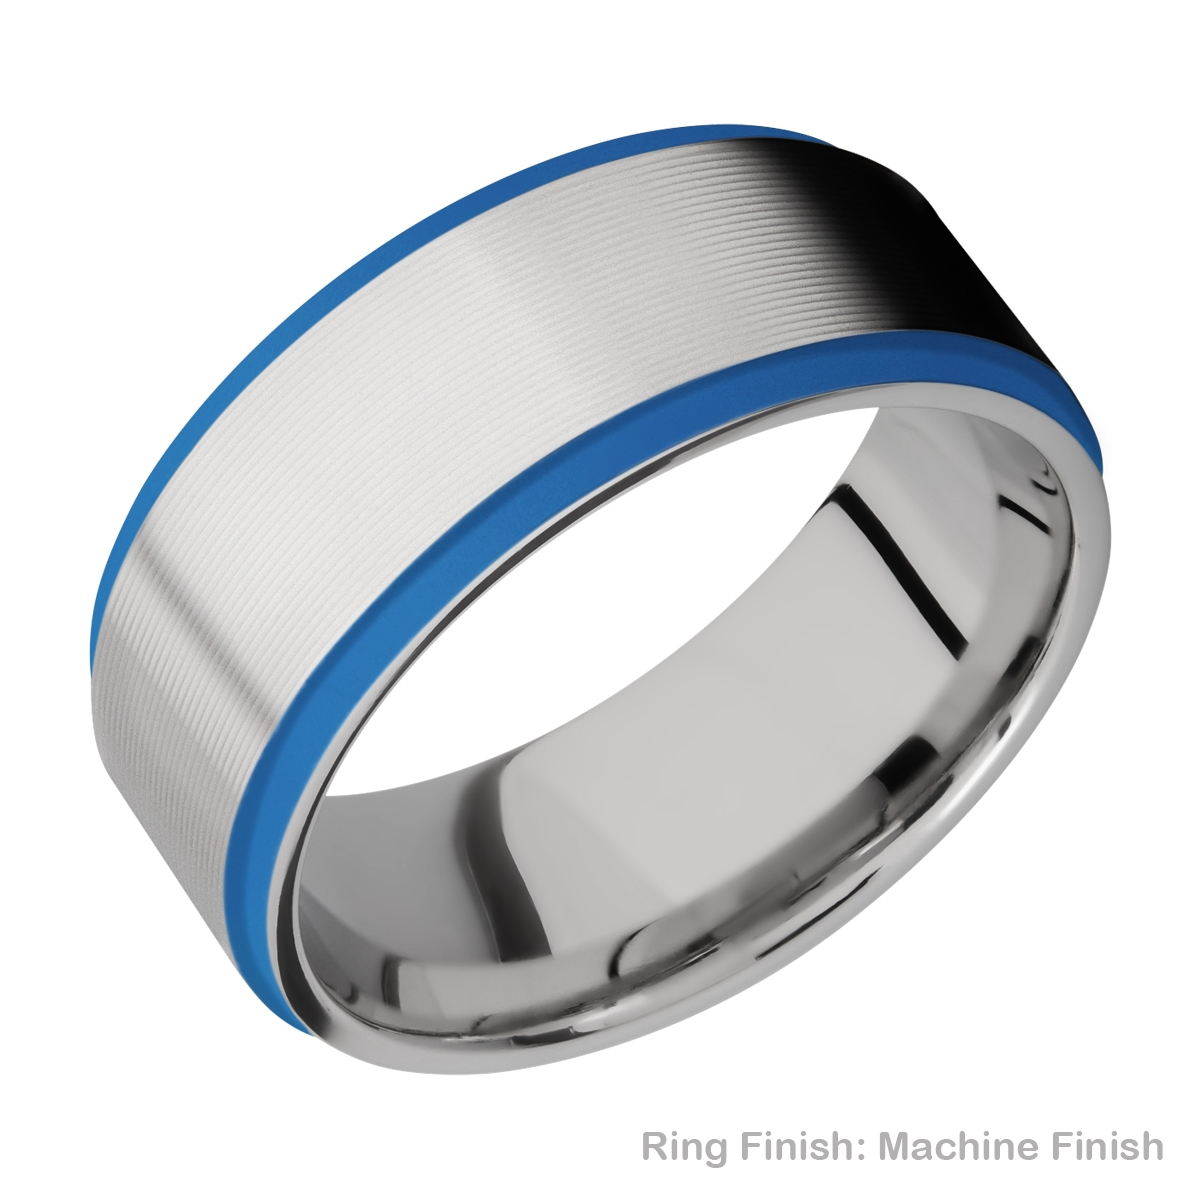 Lashbrook CC10FGE21EDGE/A/CERAKOTE Cobalt Chrome Wedding Ring or Band Alternative View 14